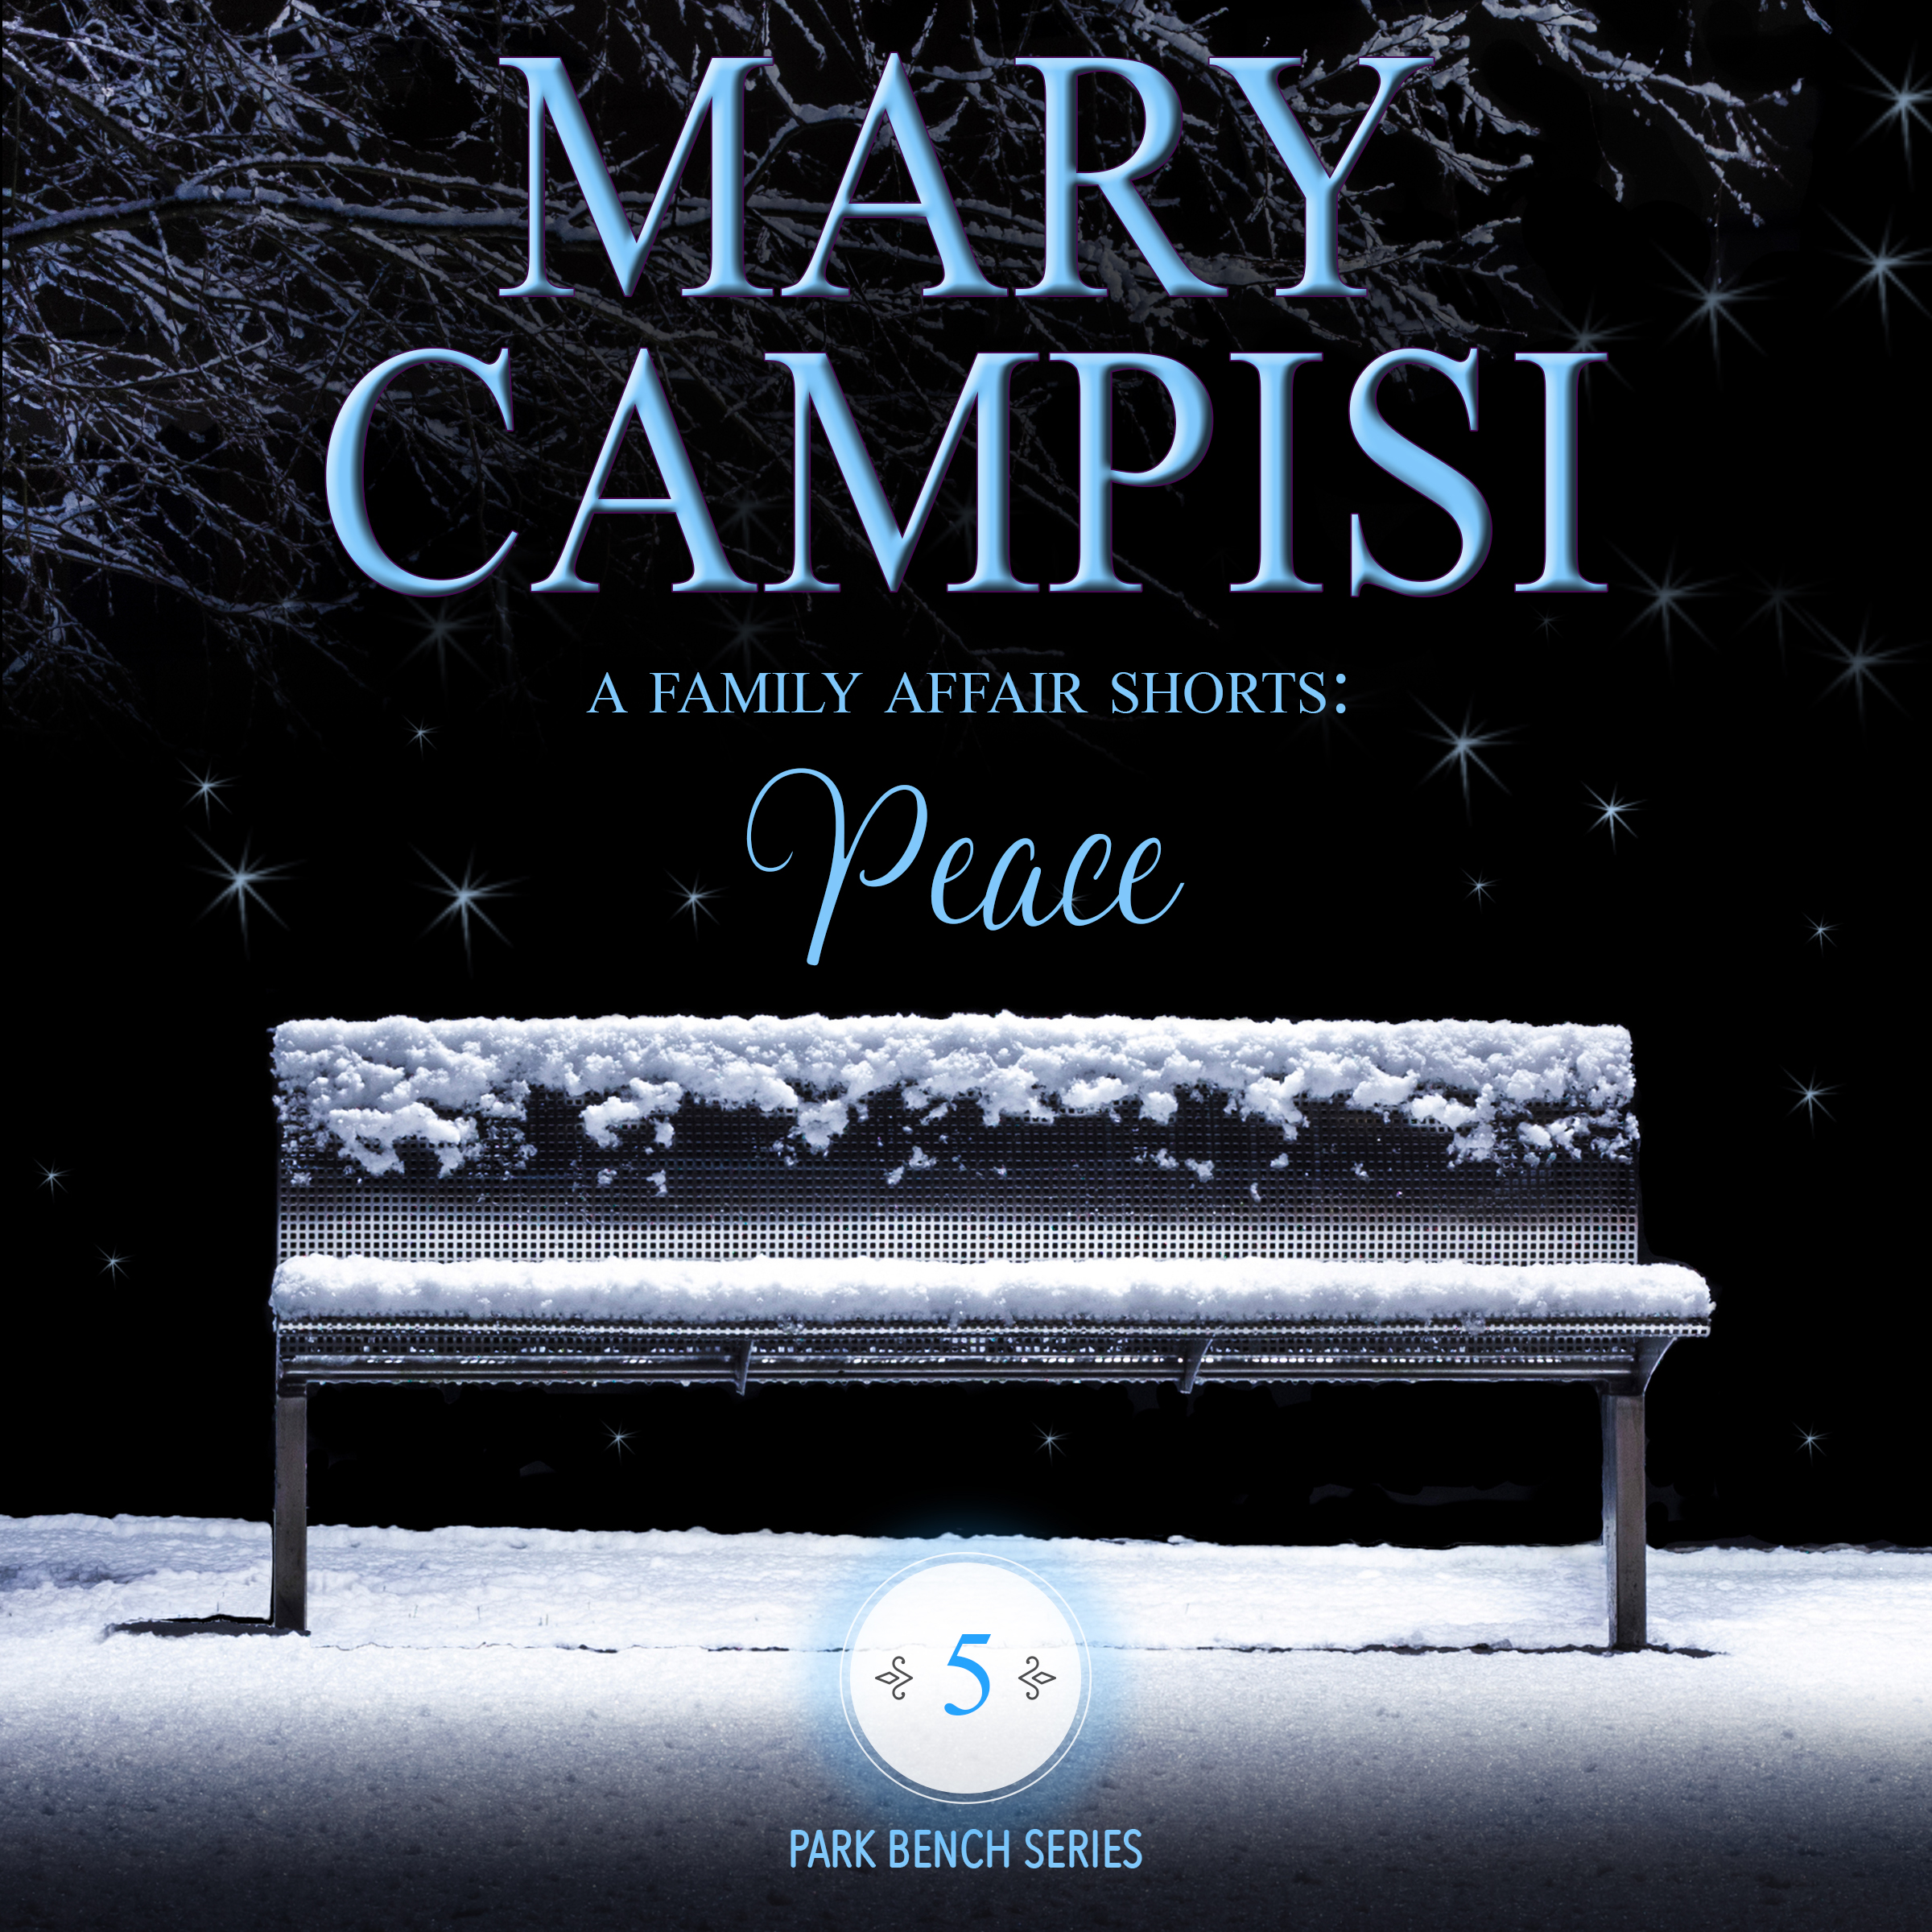 A Family Affair Shorts: Peace audiobook by Mary Campisi